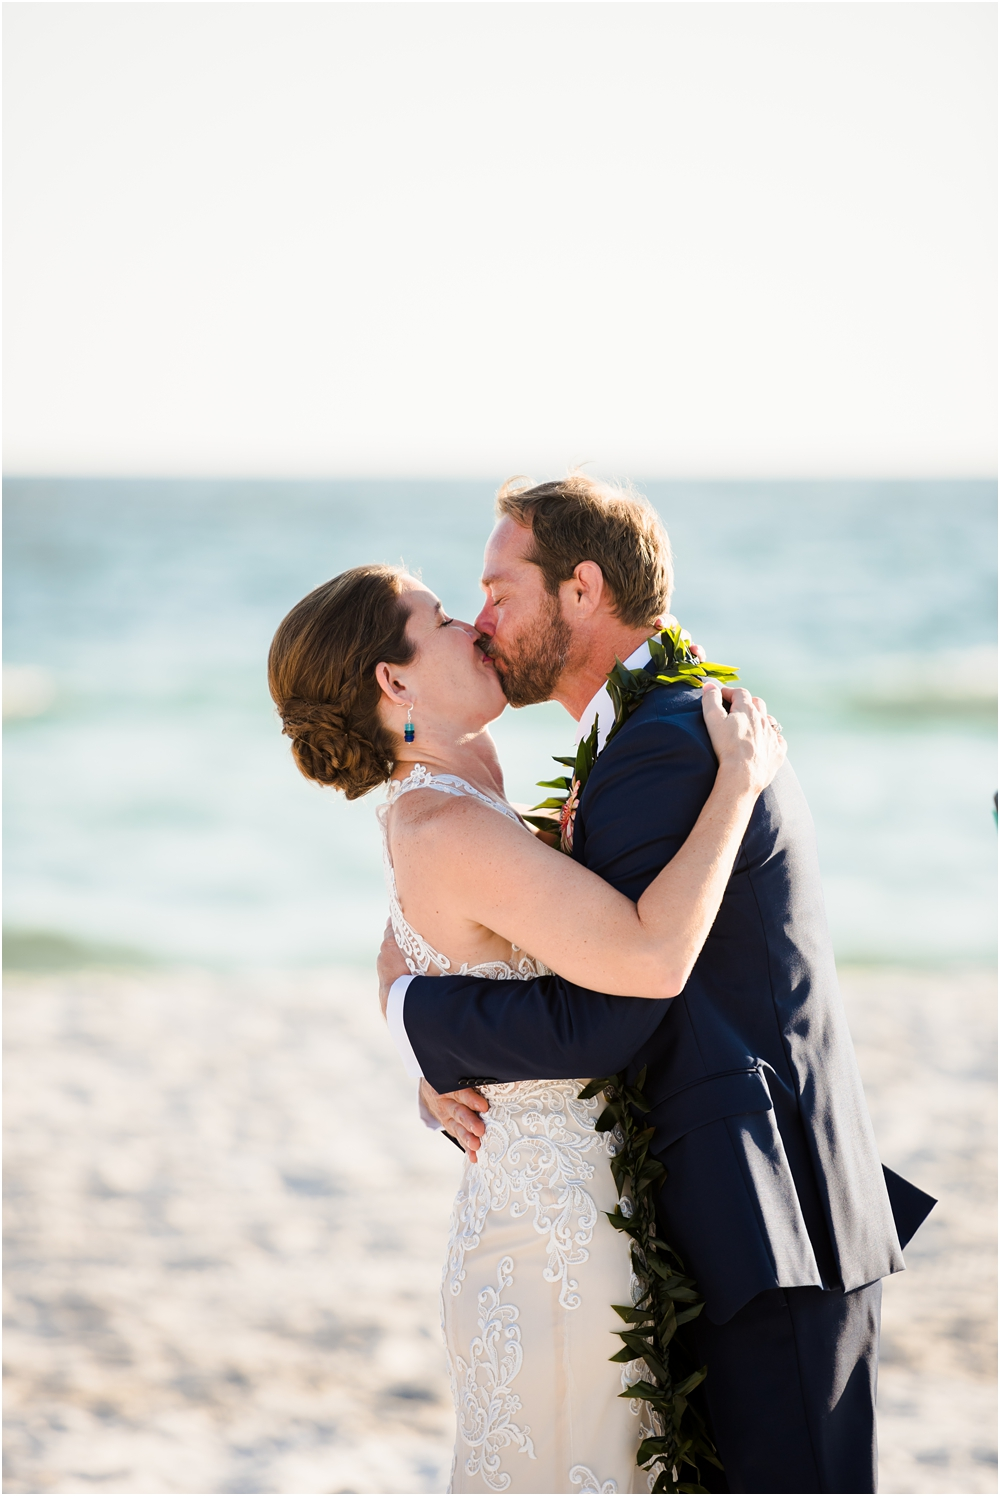 ledman-wedding-kiersten-stevenson-photography-30a-panama-city-beach-dothan-tallahassee-(241-of-763).JPG